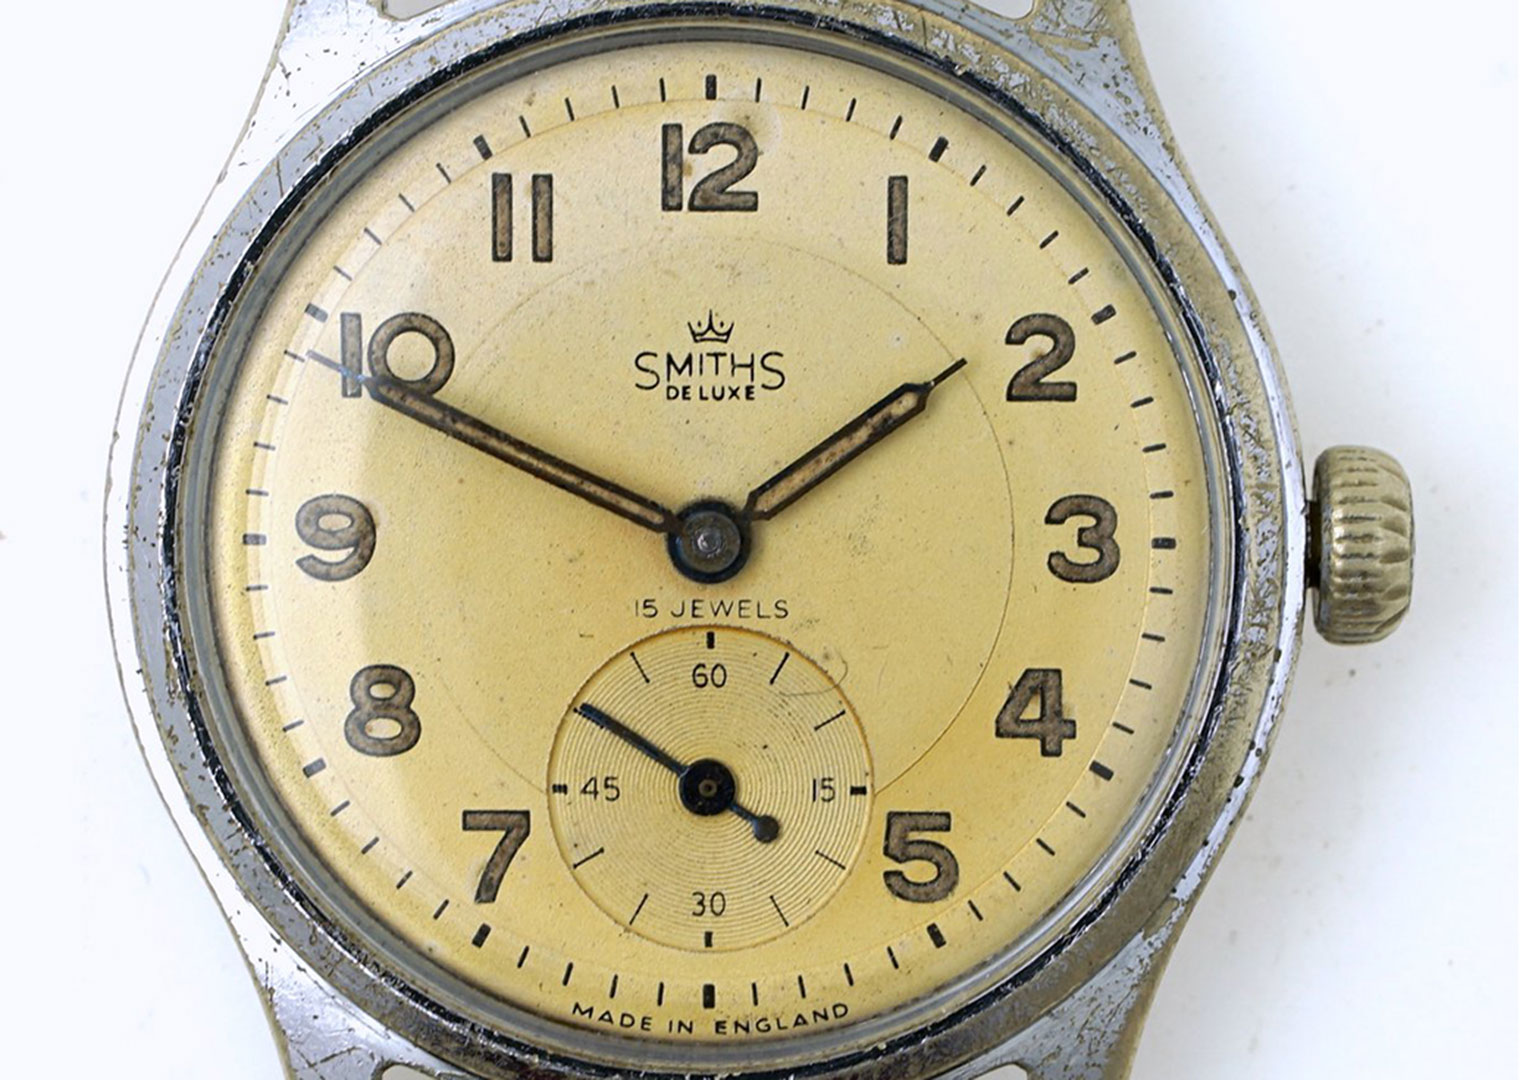 A Smith's A404 Deluxe model similar to the watch worn by Edmund Hillary. Image courtesy of smithswatches.com